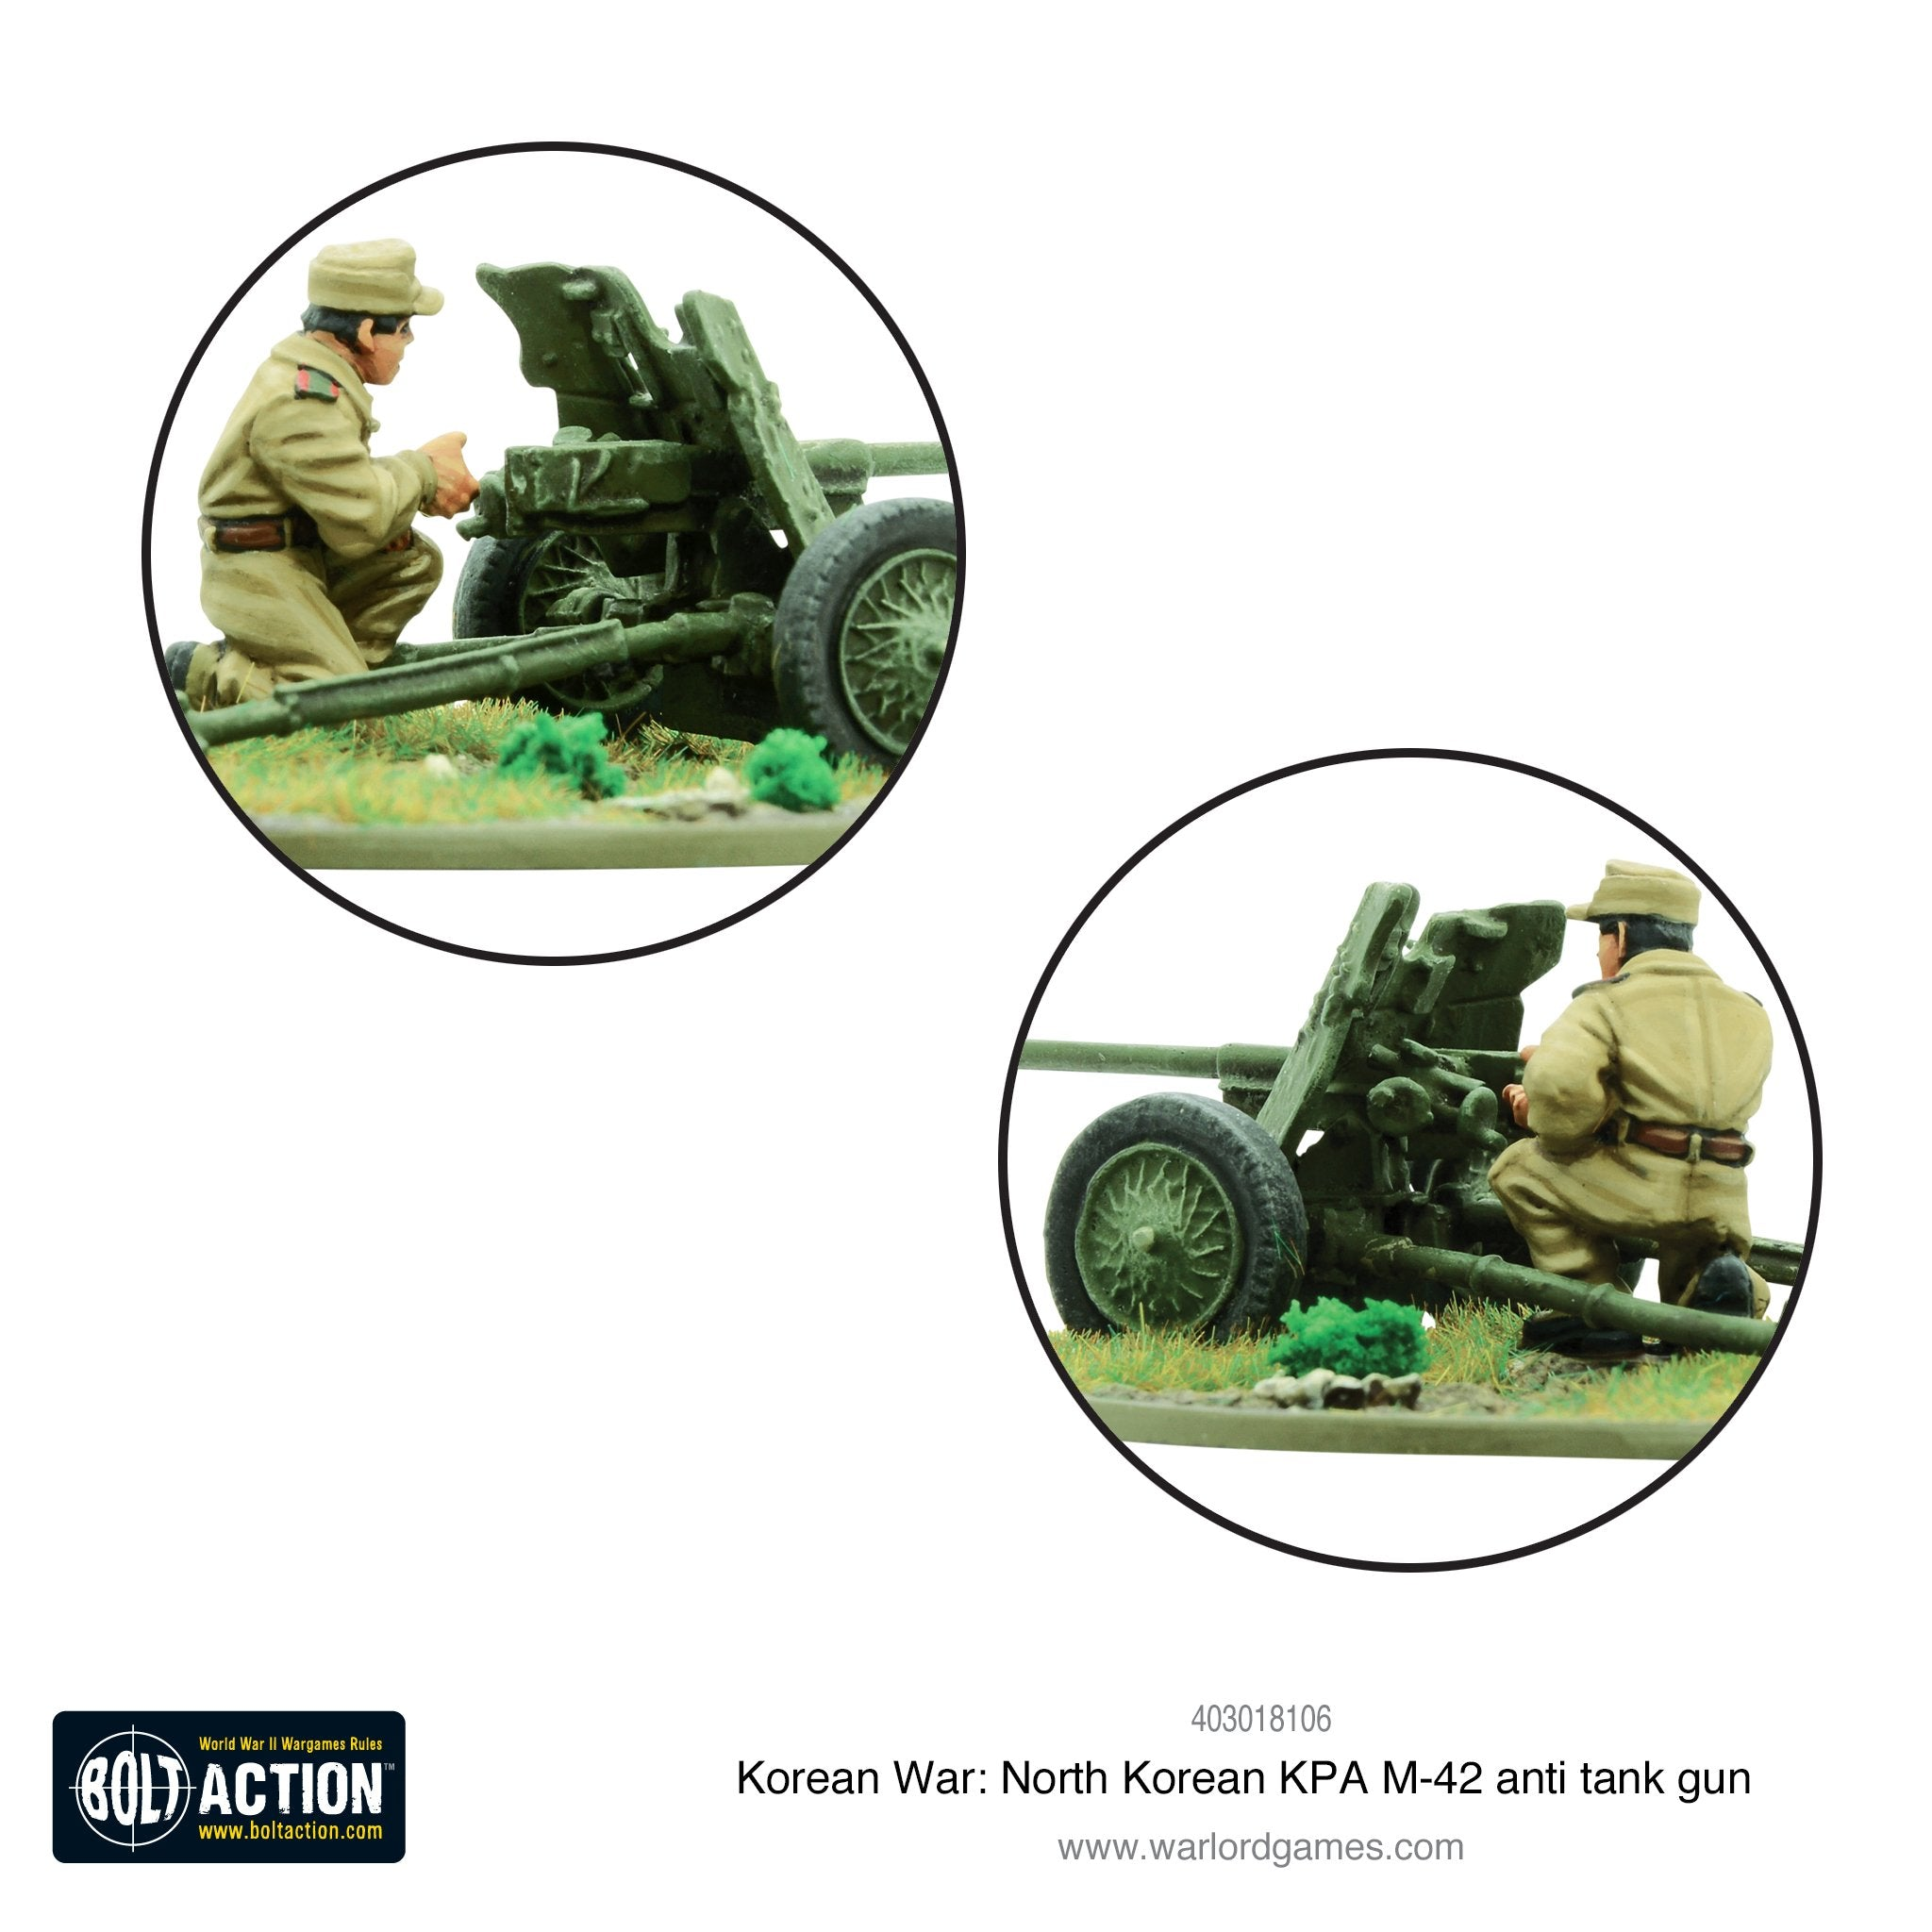 Korean War: North Korean KPA M-42 anti-tank gun